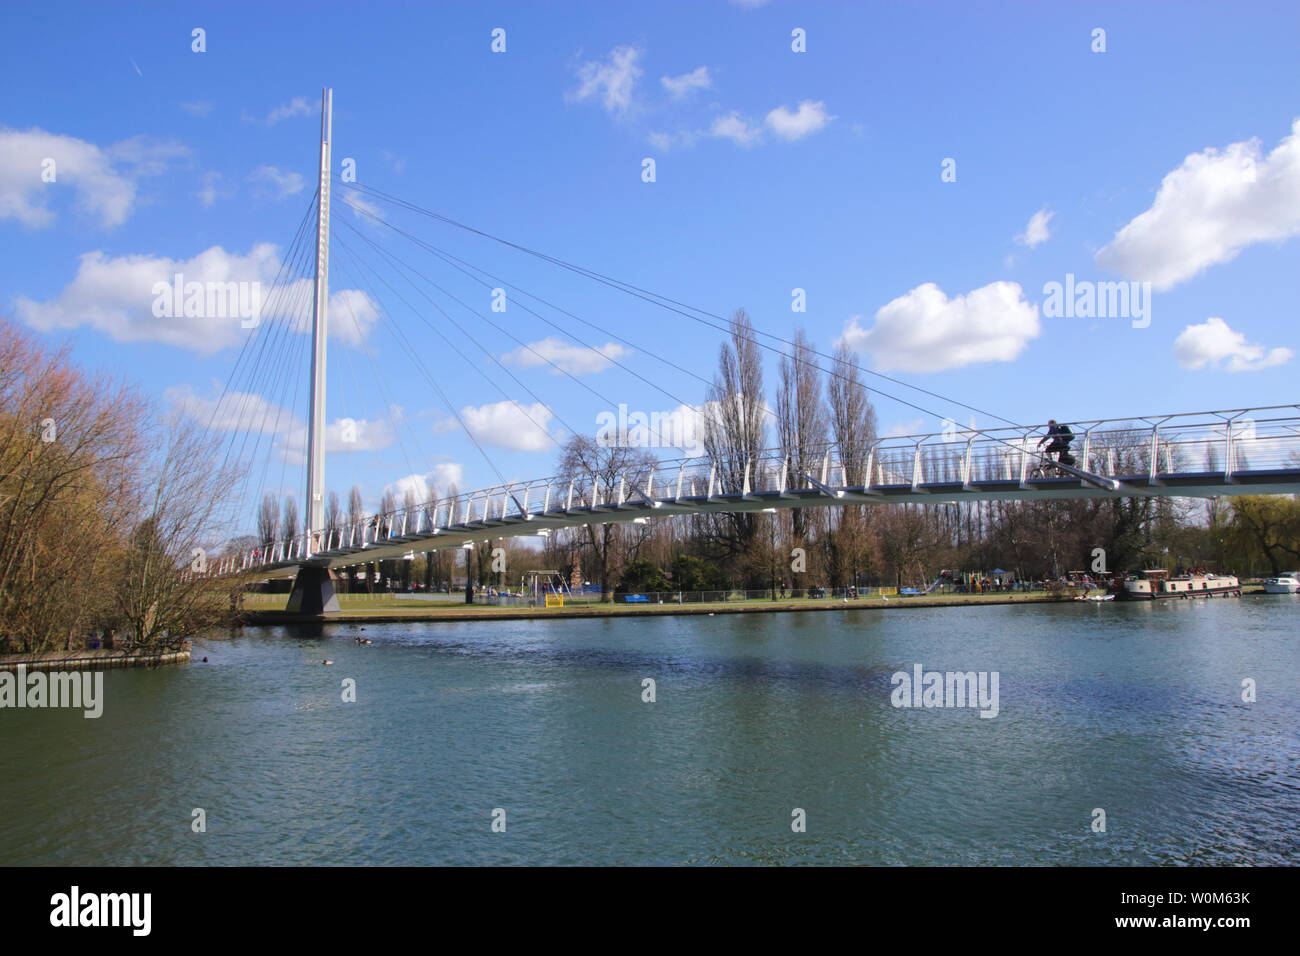 Christchurch Bridge over River Thames Reading Berkshire Stock Photo